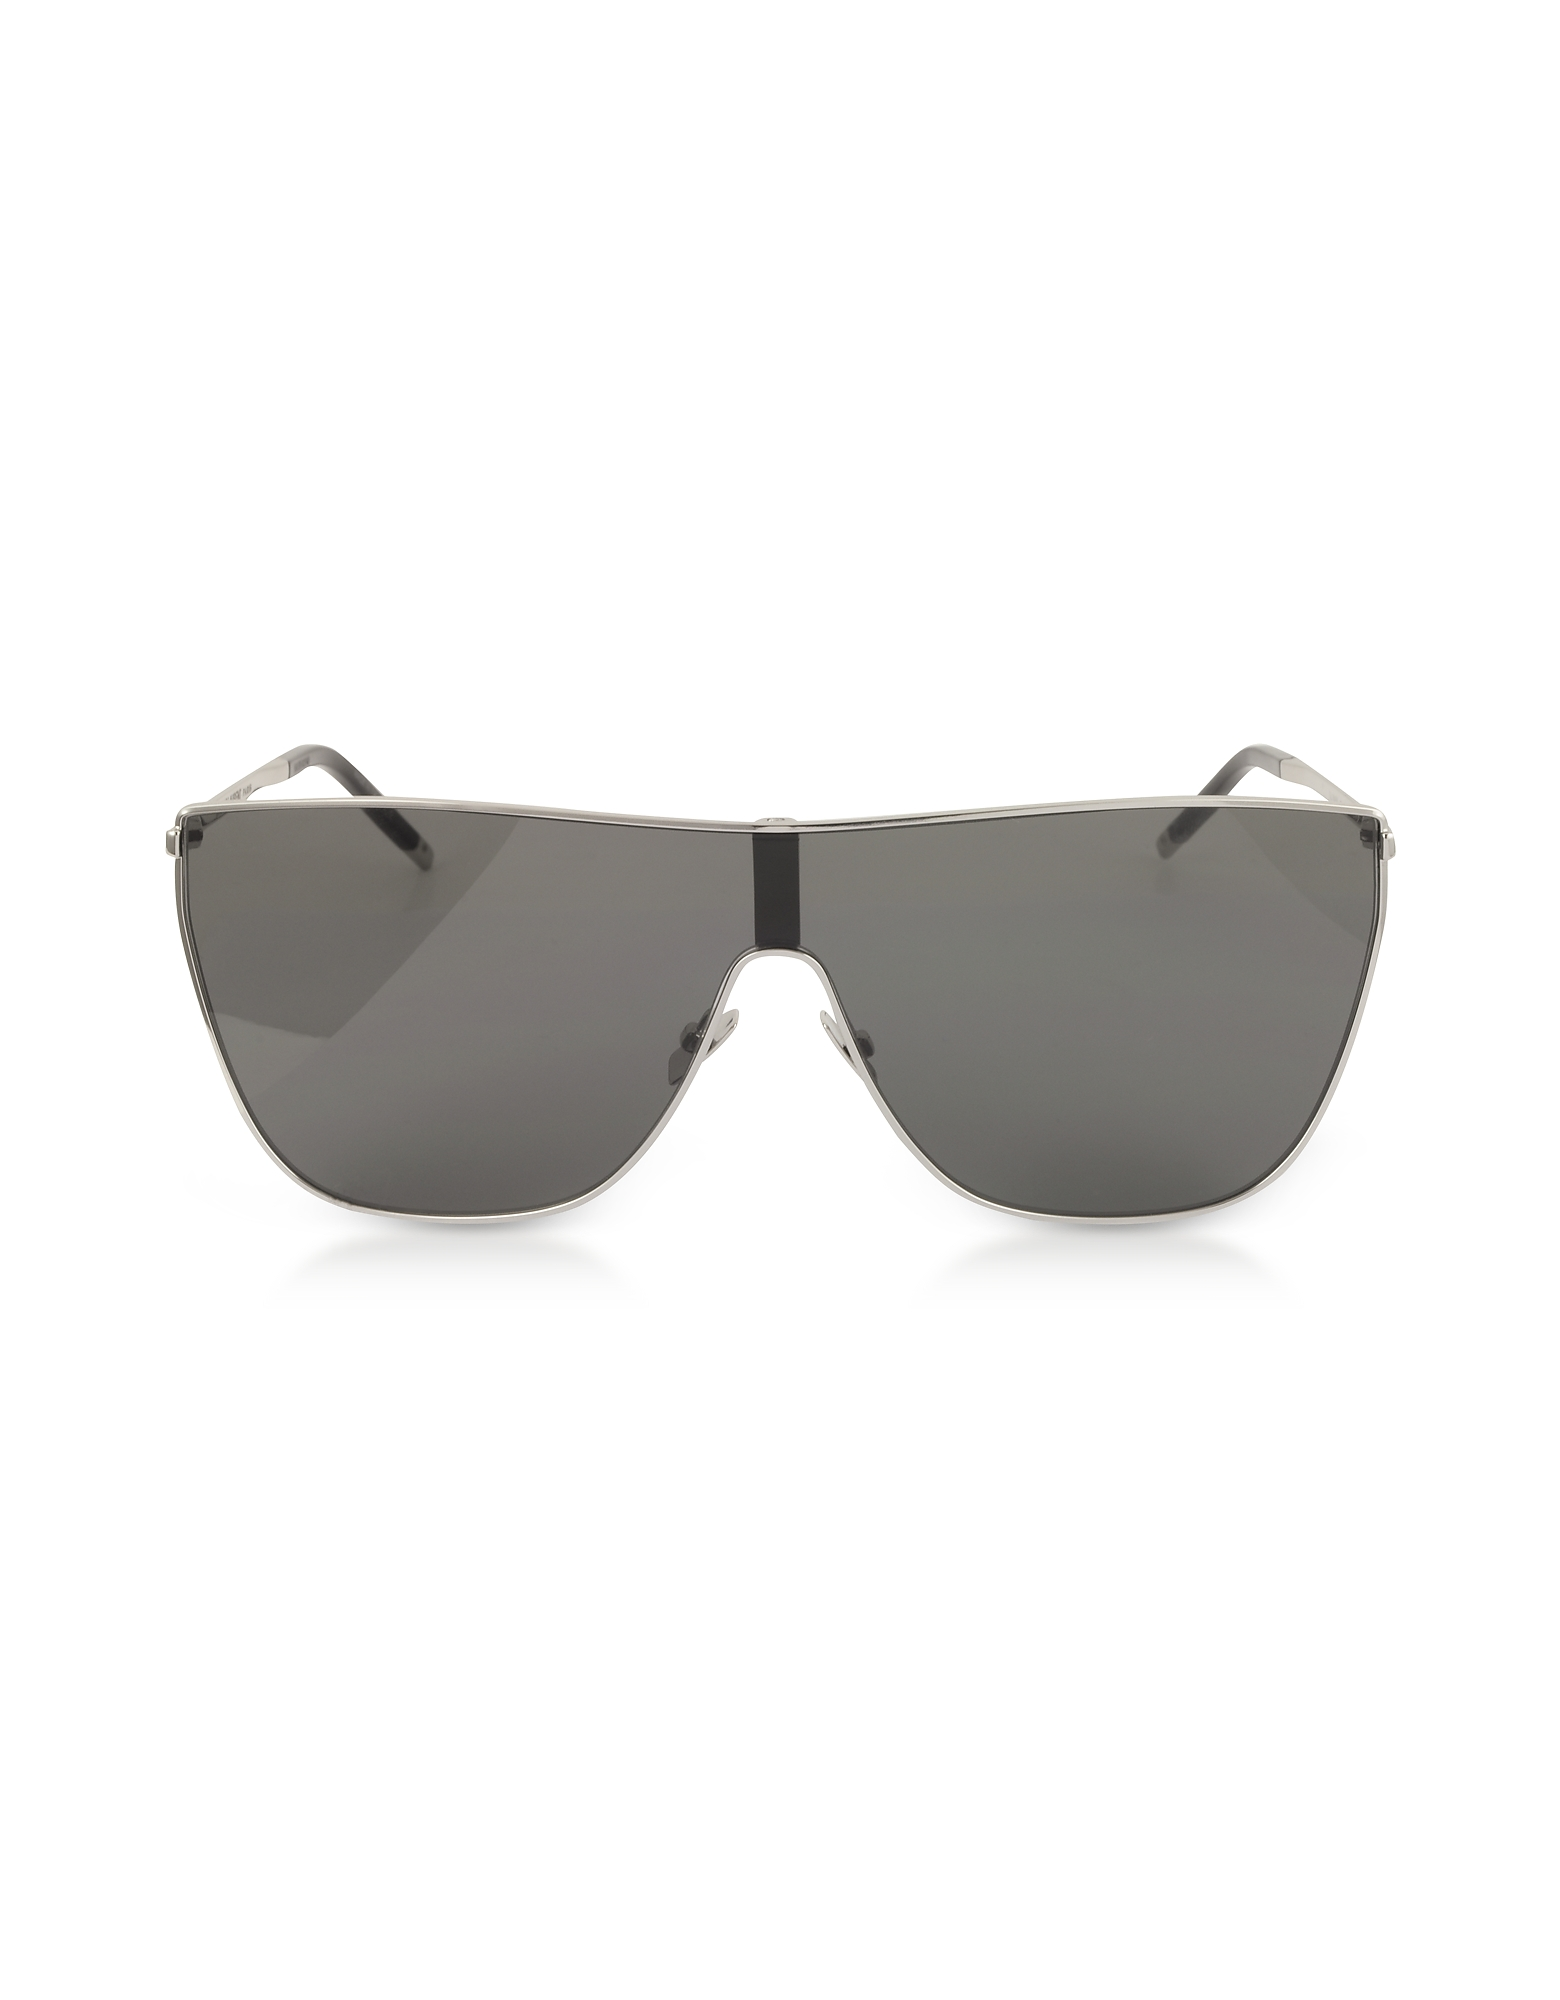 Saint Laurent Designer Sunglasses, SL1 MASK Metal Frame Men's Sunglasses